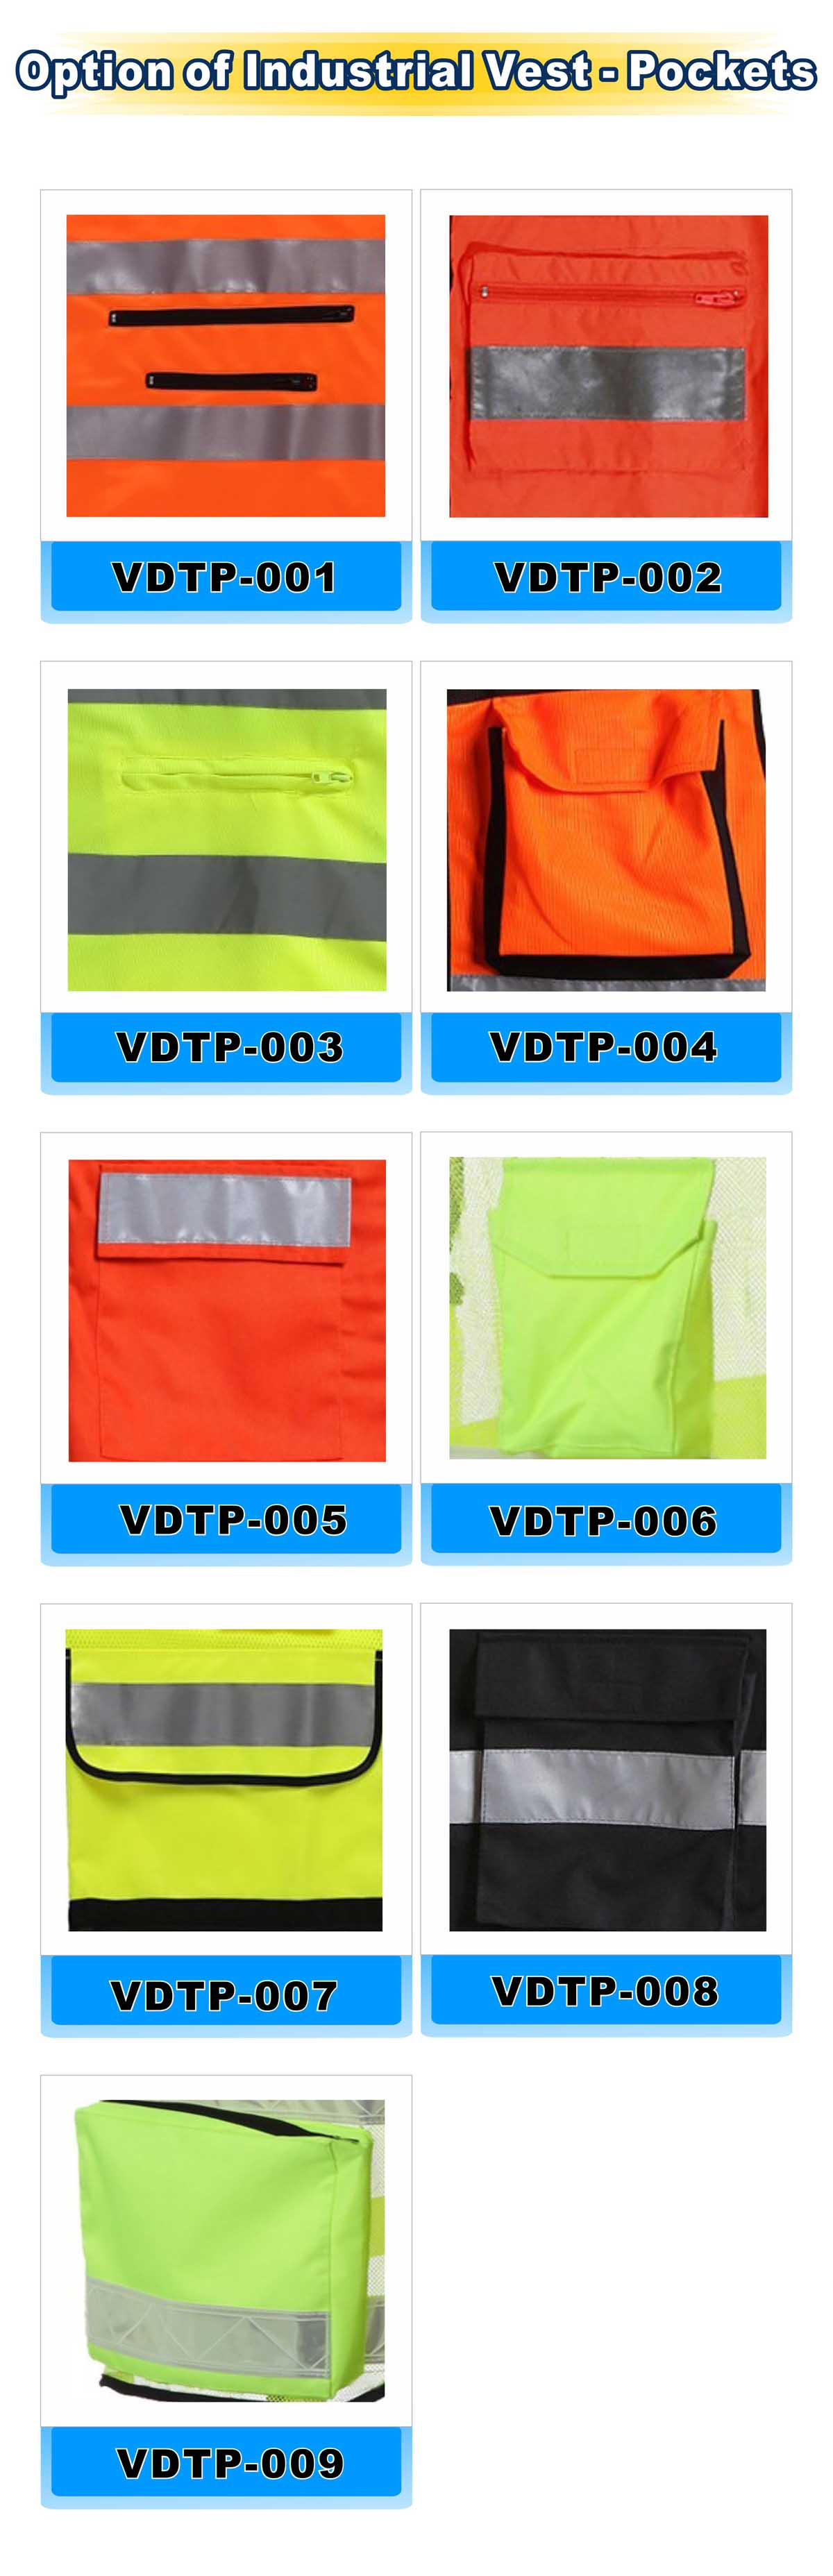 Option of lndustrial Vest-Pockets